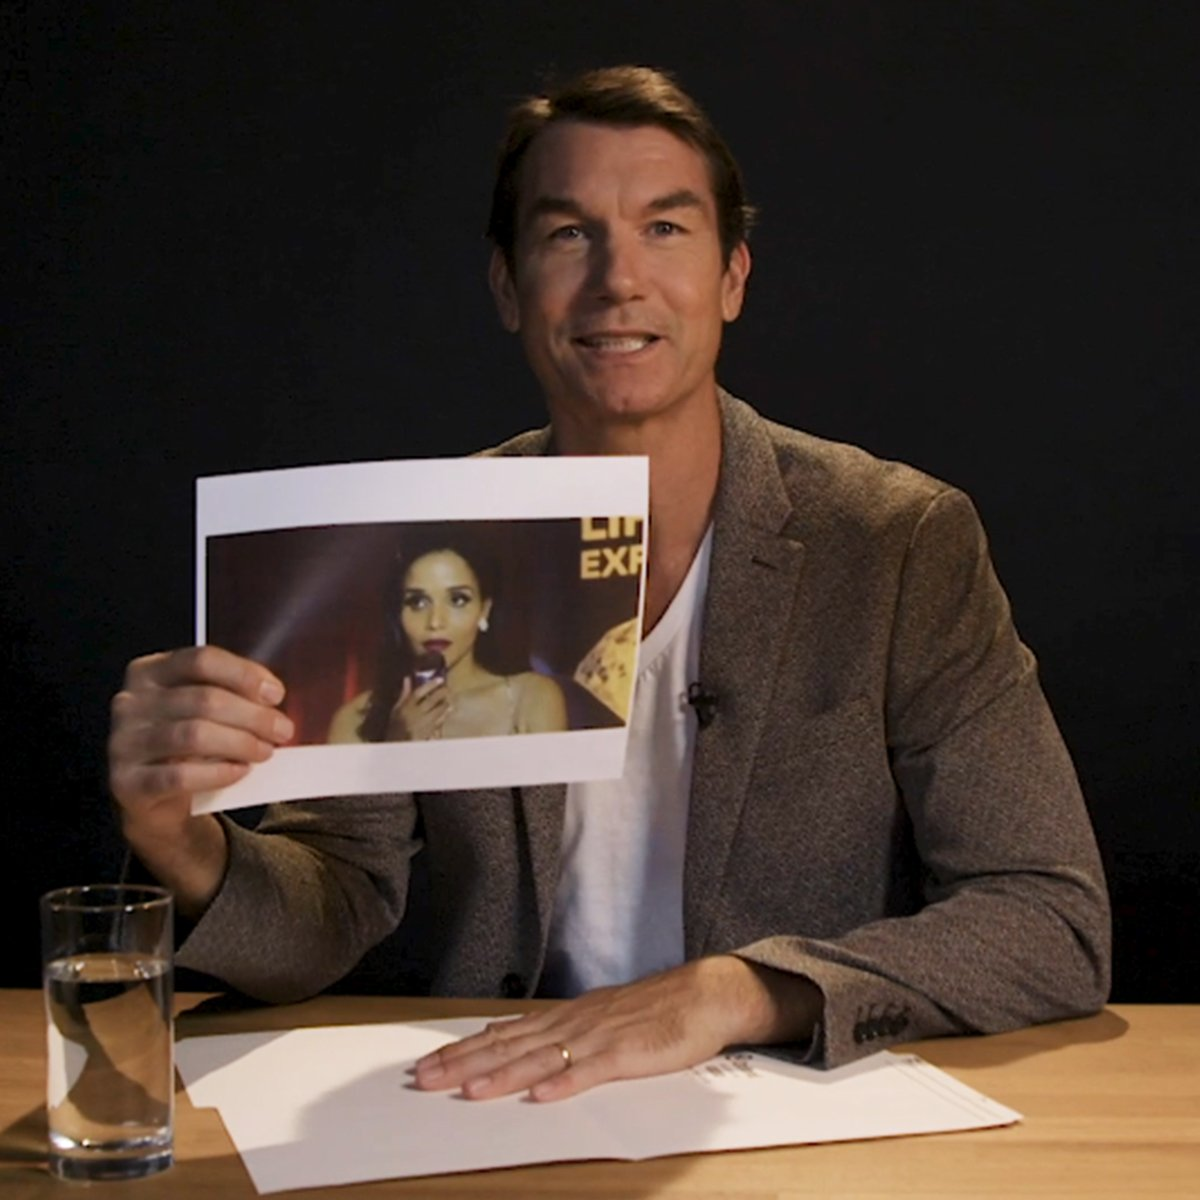 Who knew that a double undercover mission could lead to romance? Harley and Sam sure didn't 💕  Watch @MrJerryOC break down last week's episode of #Carter in our latest instalment of Carter Scene Investigation: http://bit.ly/carter-bts-205 @CarterInCDN @sydneytpoitier